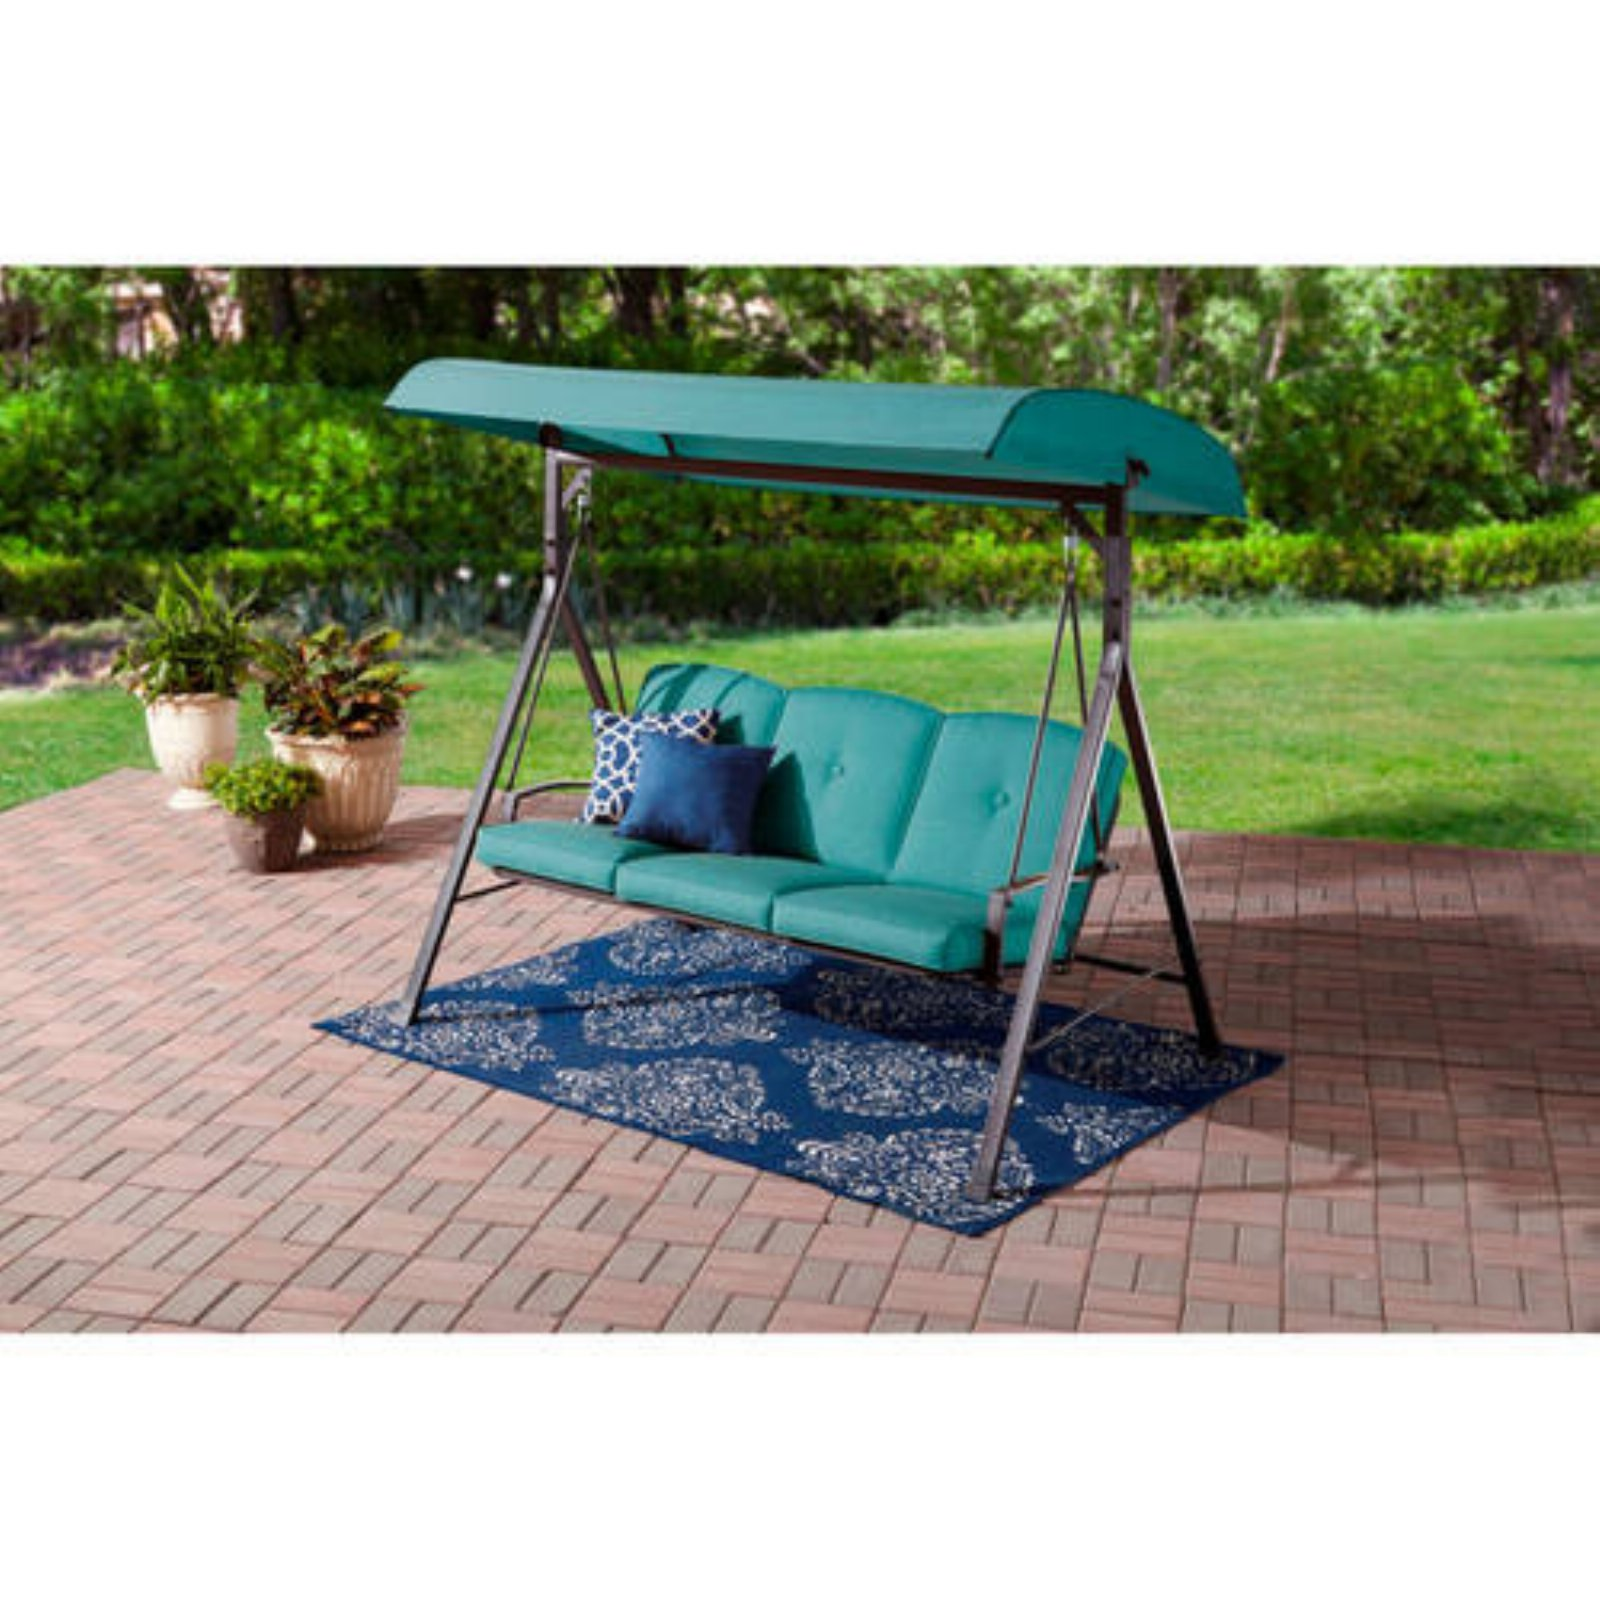 Mainstays Forest Hills 3 Person Porch Swing Frame Set With Canopy